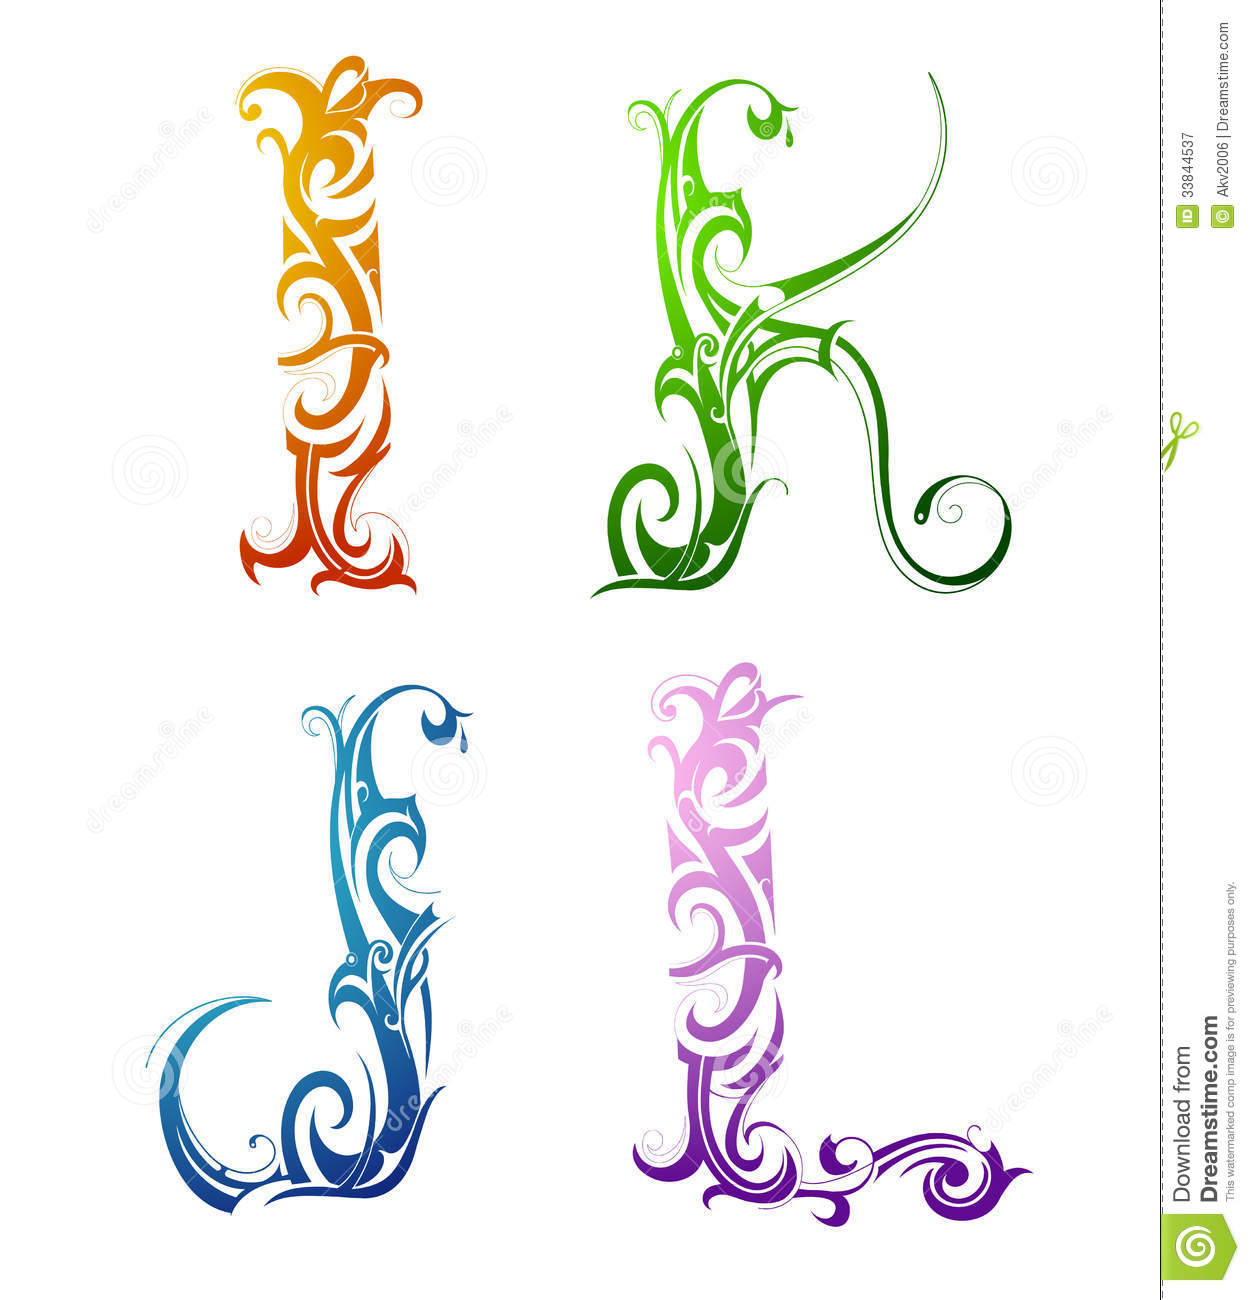 Decorative Letter Font Type Royalty Free Stock Photography